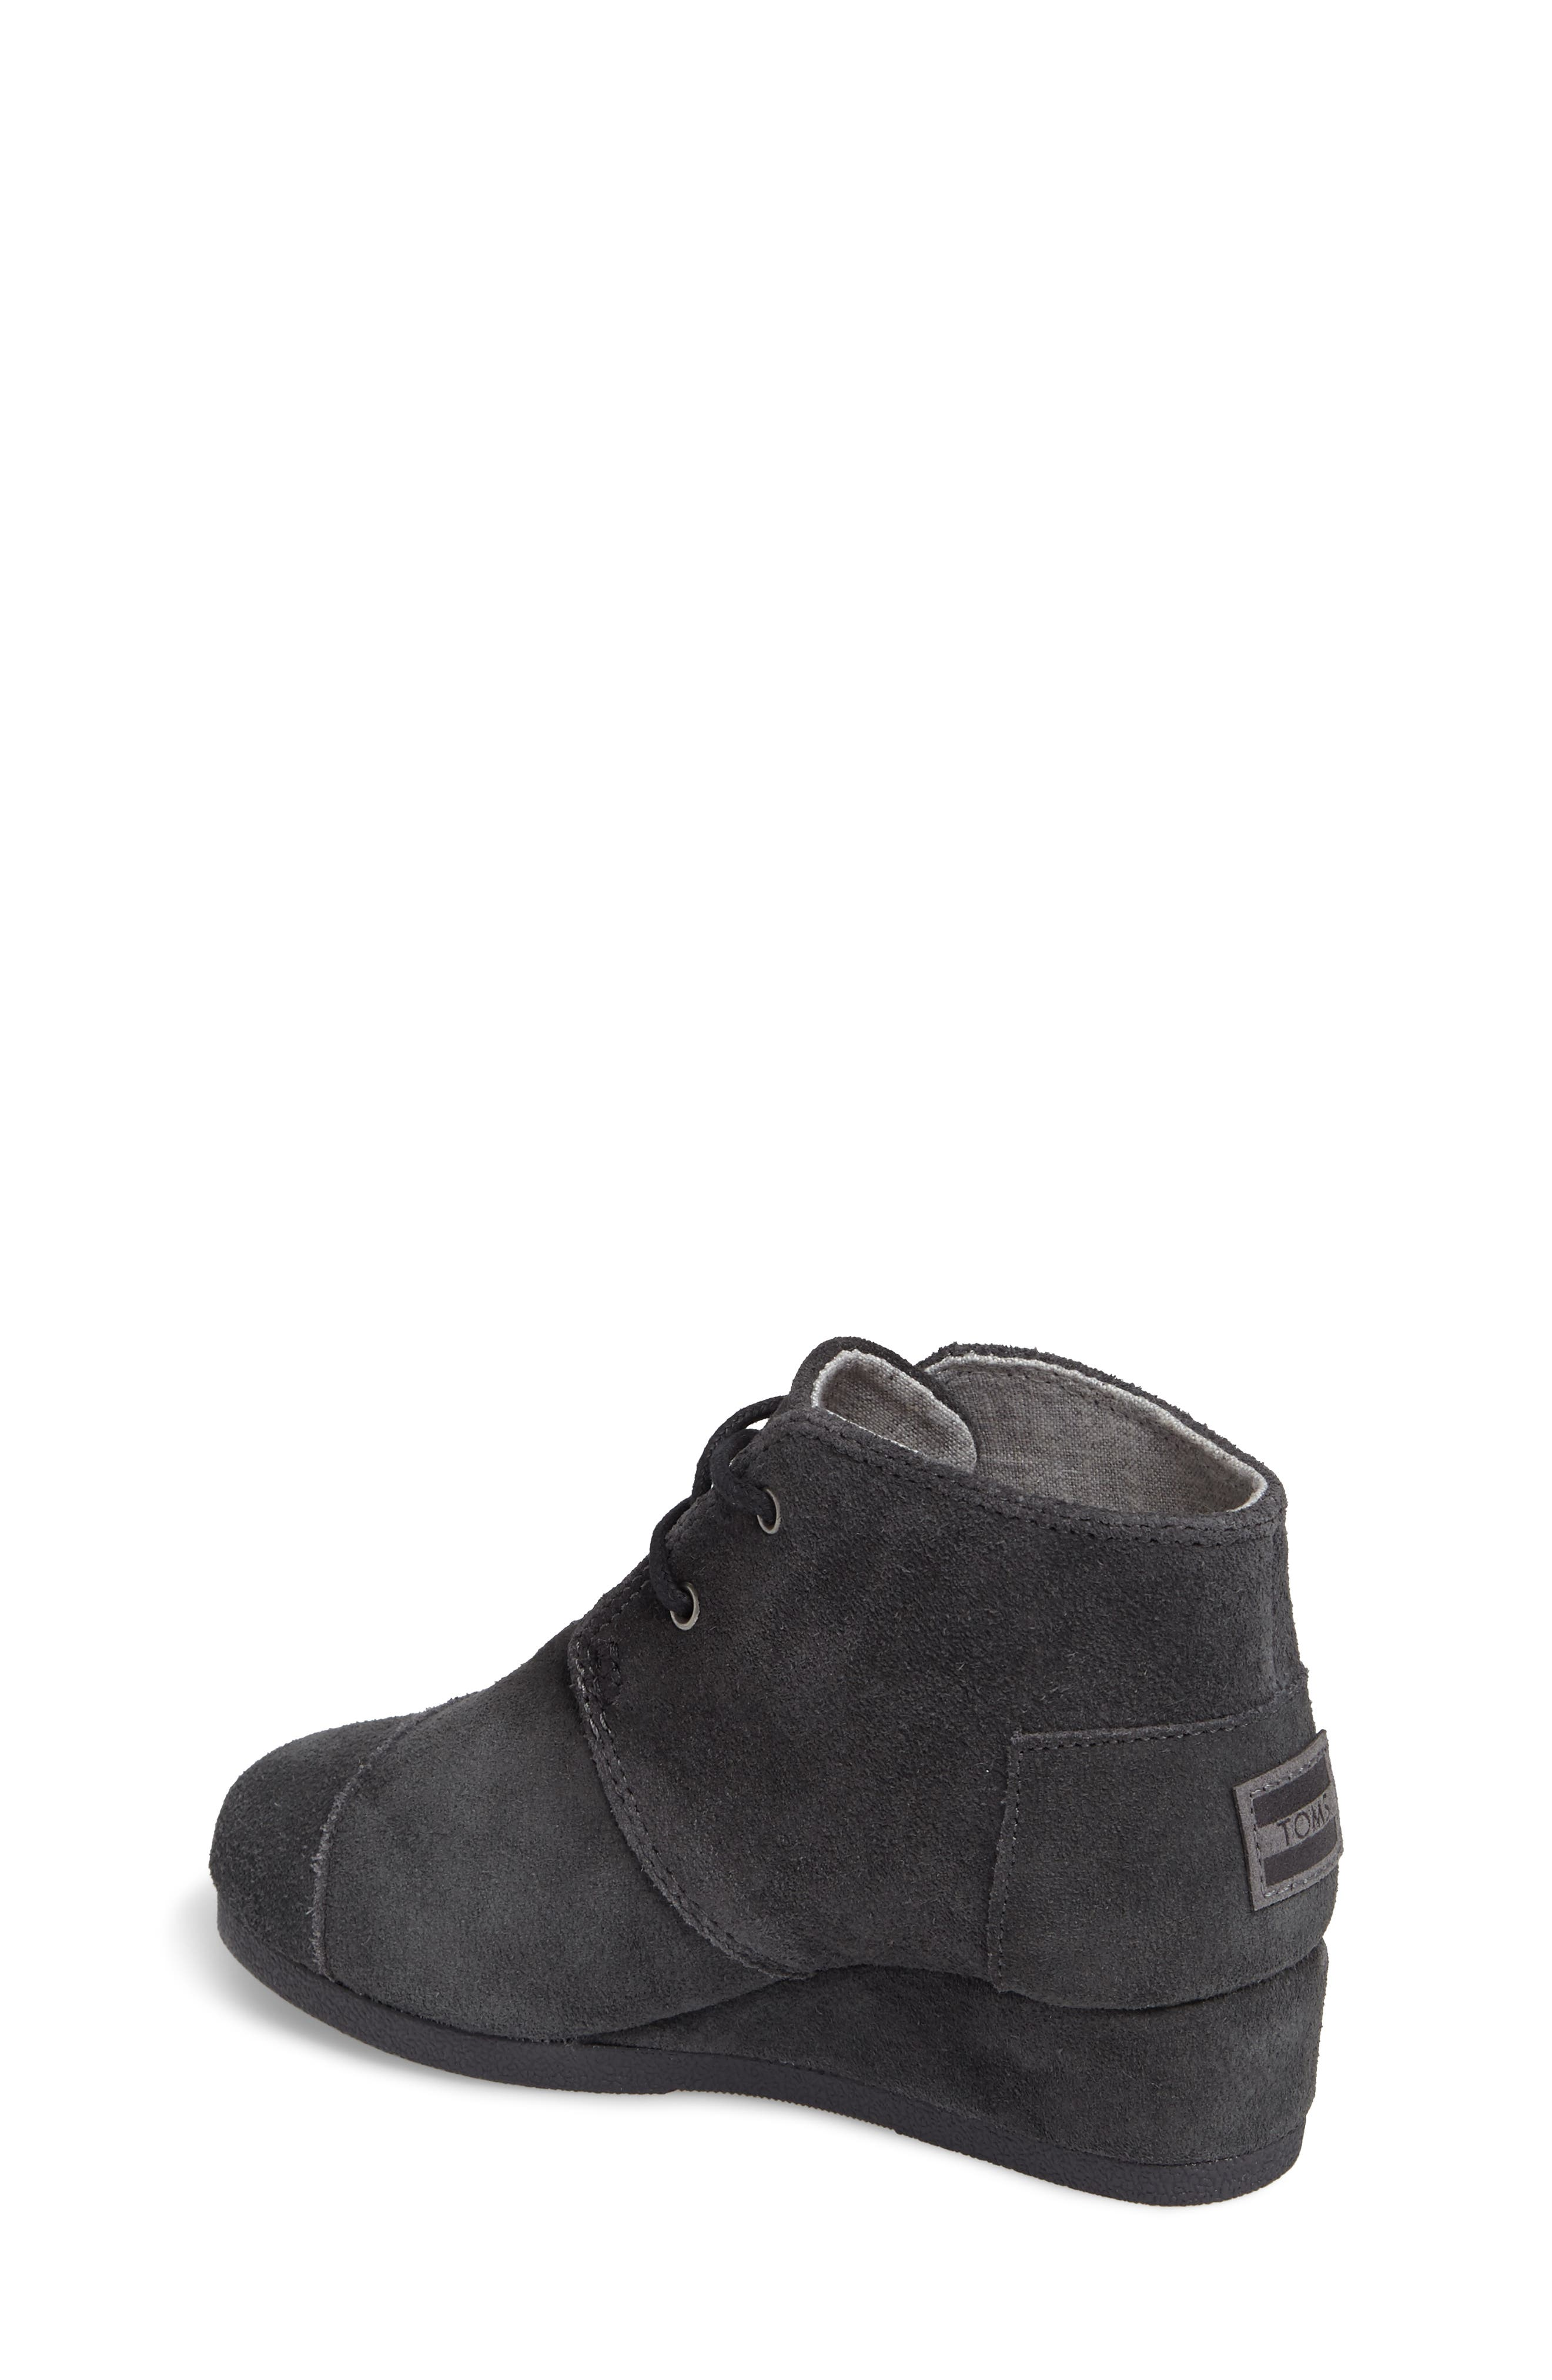 'Desert - Youth' Wedge Bootie,                             Alternate thumbnail 2, color,                             021